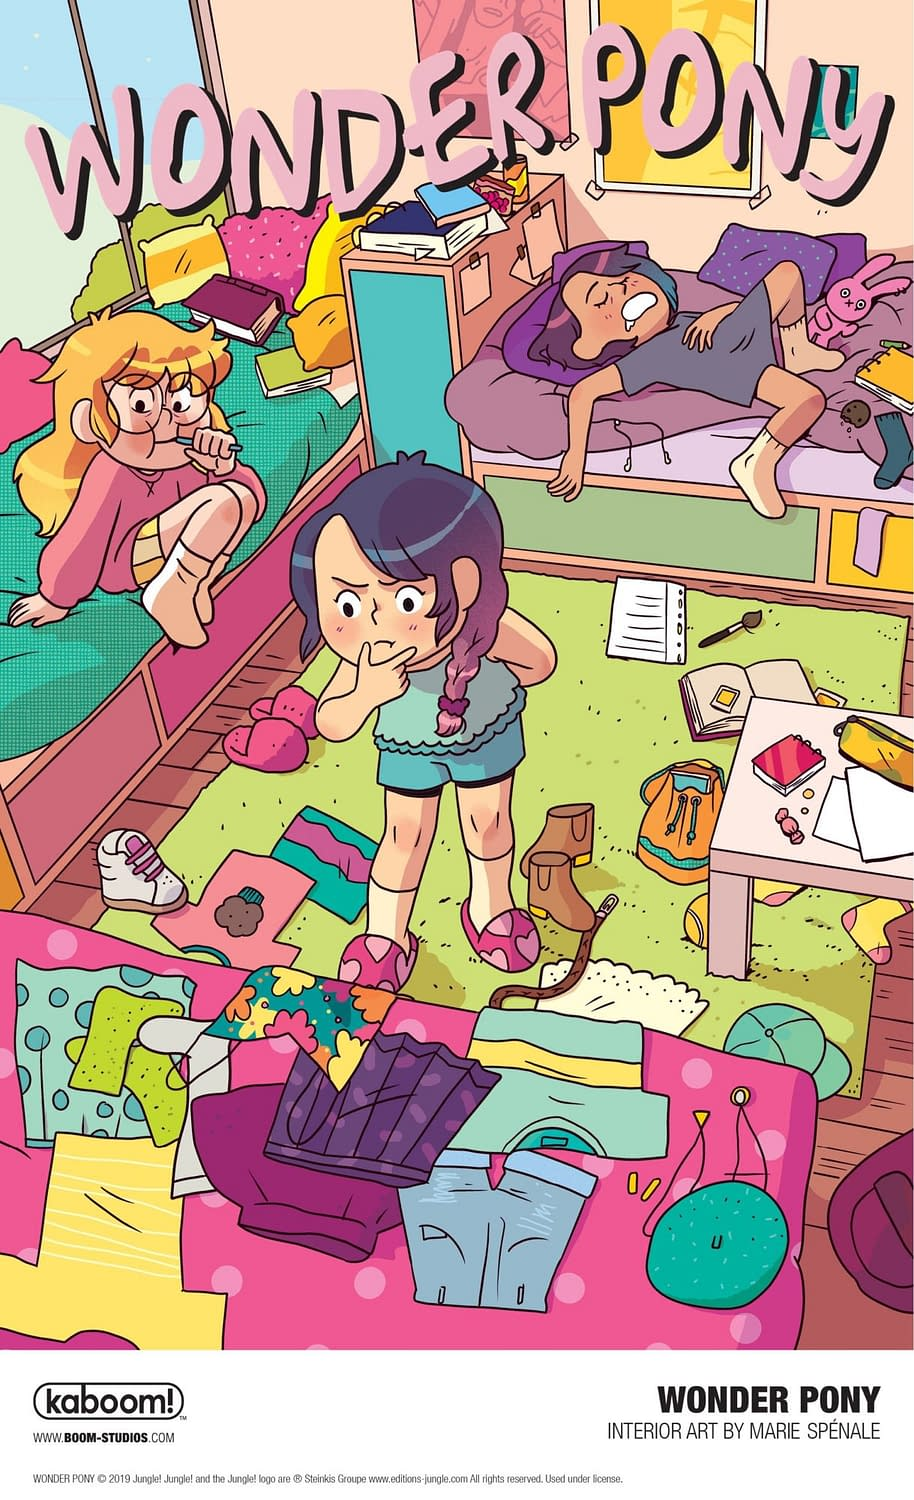 BOOM! to Publish Marie Spénale's Wonder Pony OGN Next April